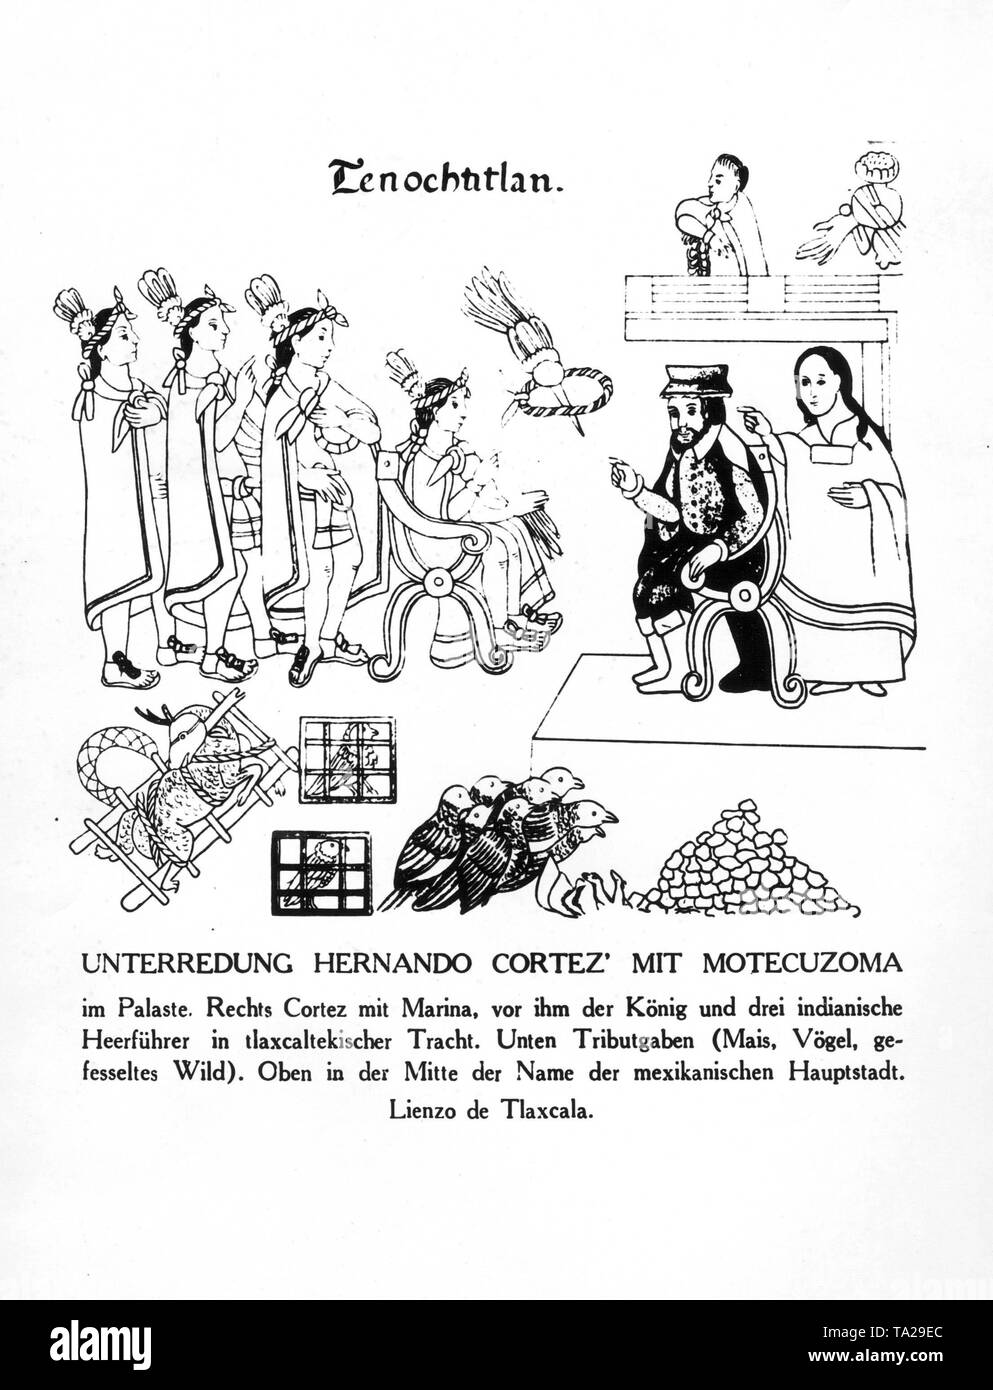 Conversation between Hernando Cortez with Moctezuma in his palace near the Mexican capital of Tenochtitlan. Right, Cortez with the translator Marina, left of him the king and three Indian military leader in Tlaxcaltecan clothes. Down in the picture you can see corn, birds and fettered wild animals as tribute gifts. - Stock Image